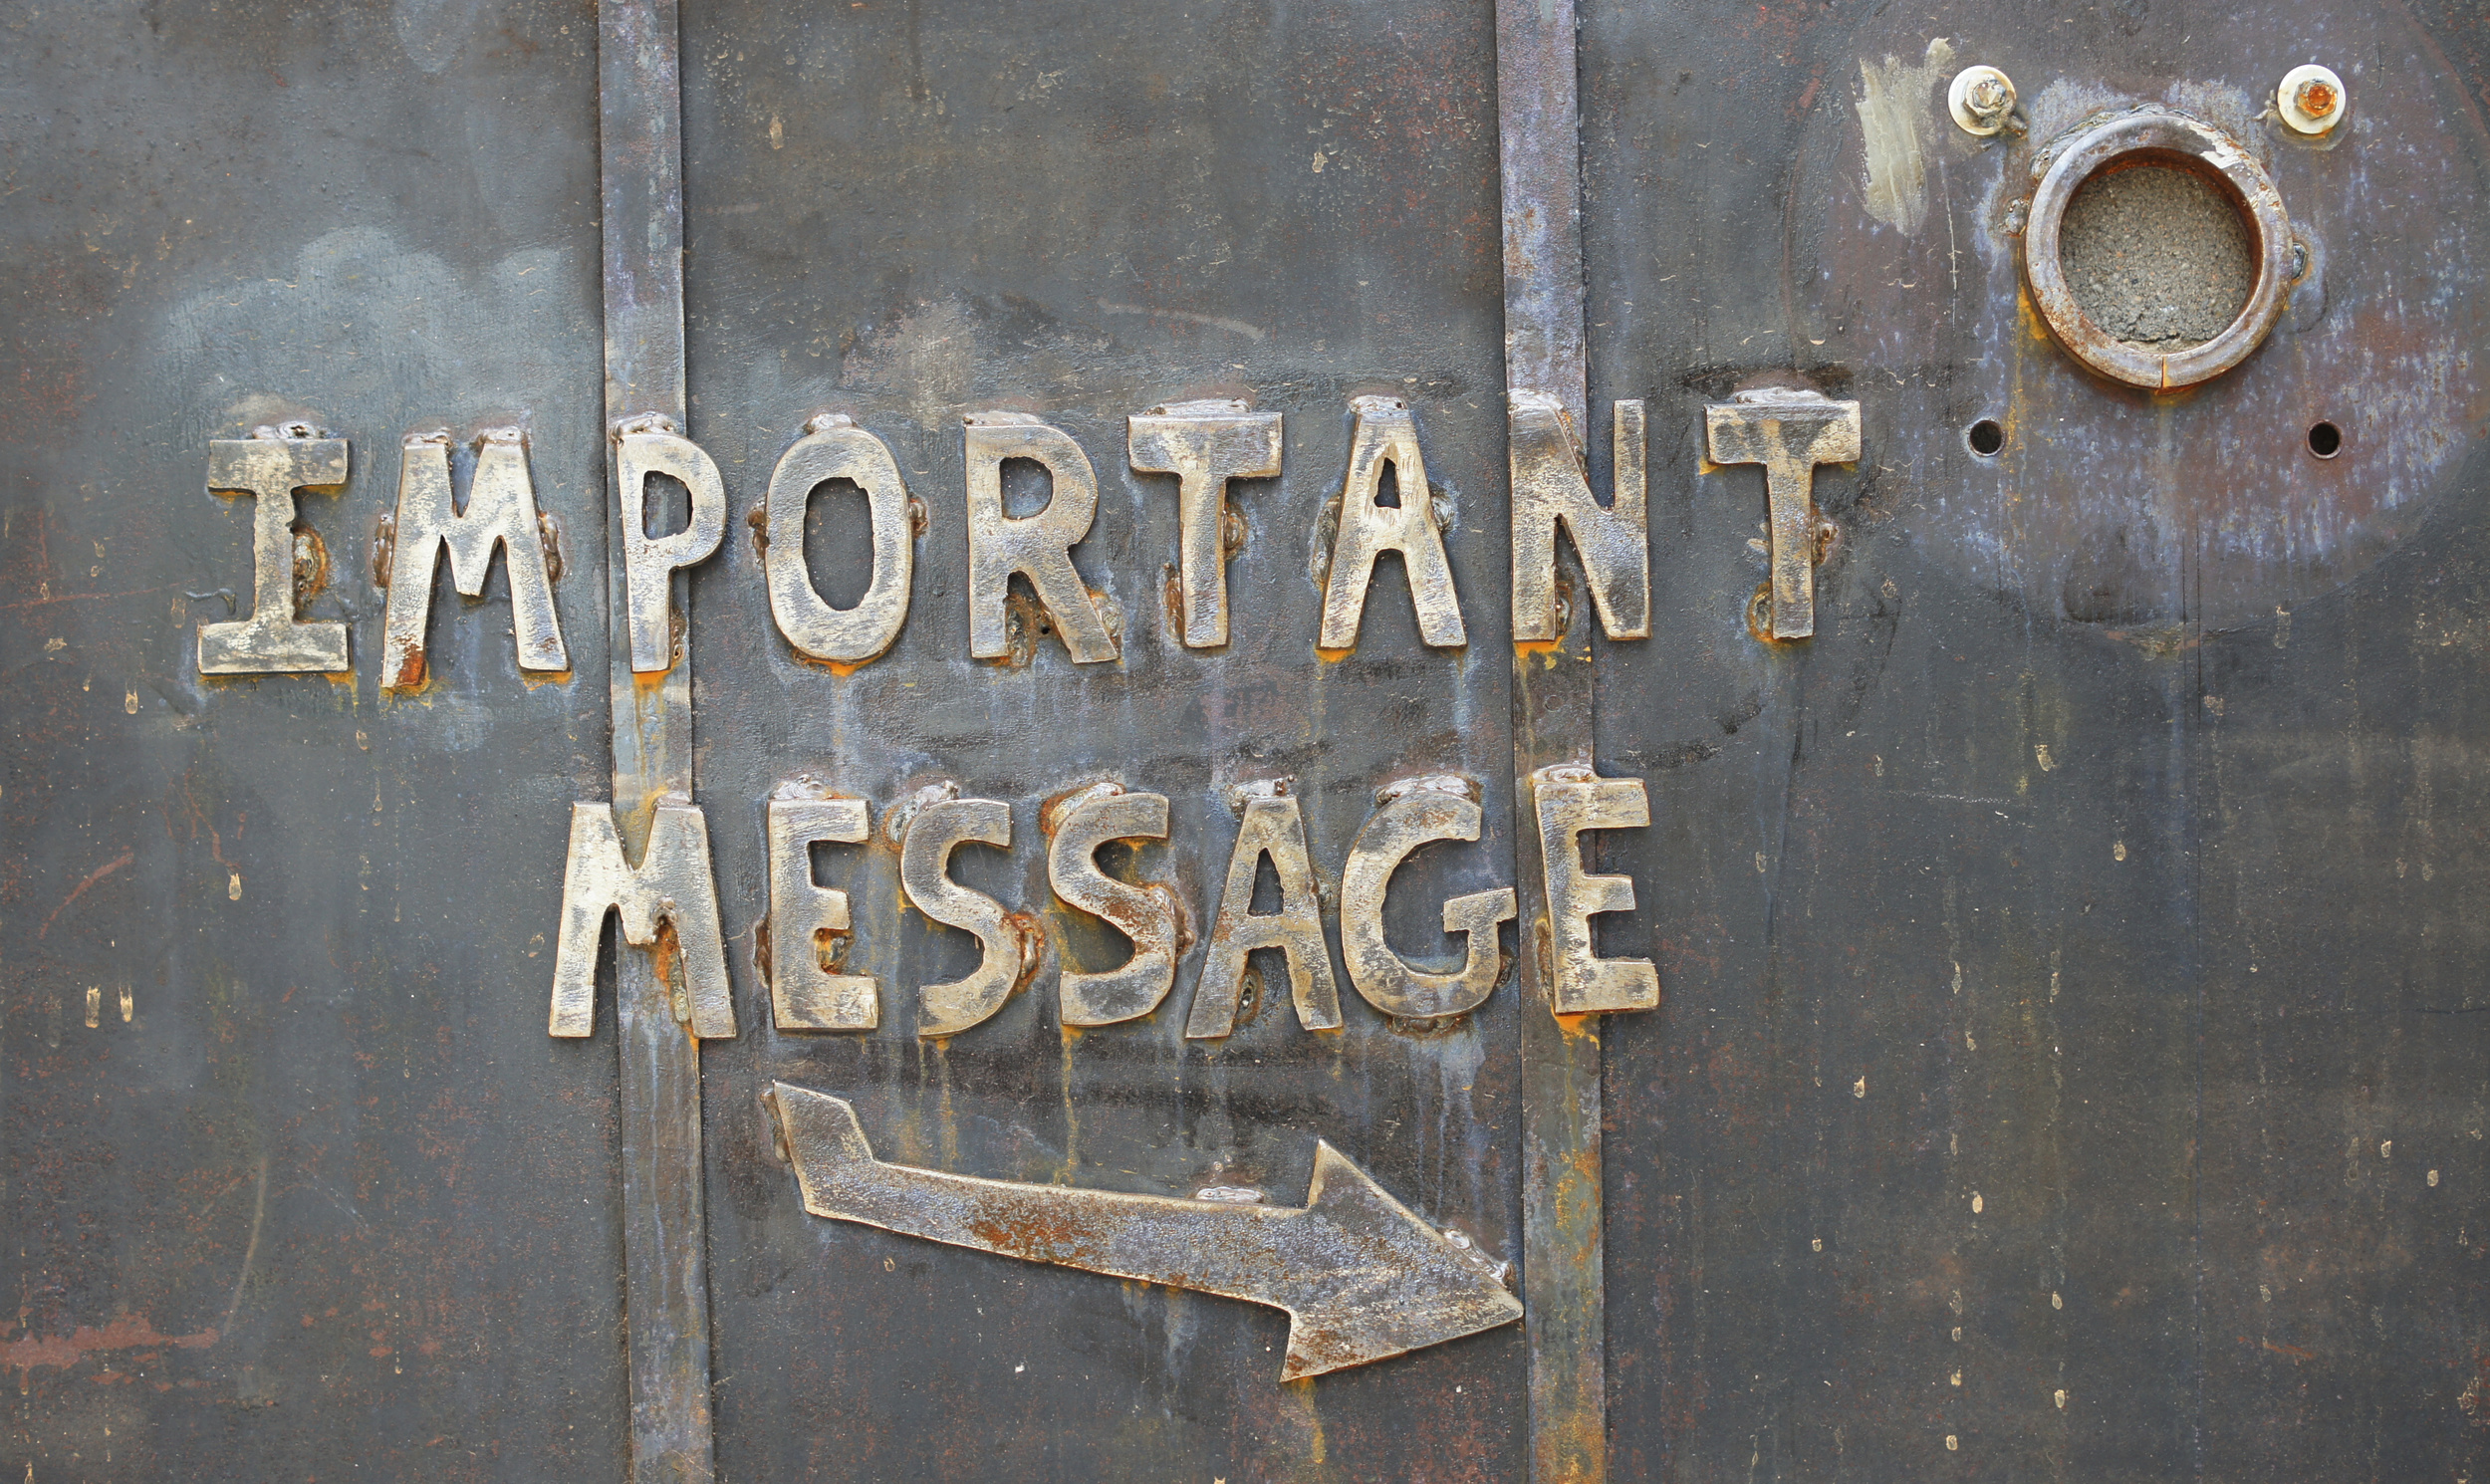 """Important Message"" by Patrick Denker via  Flickr  (   CC BY 2.0  )"